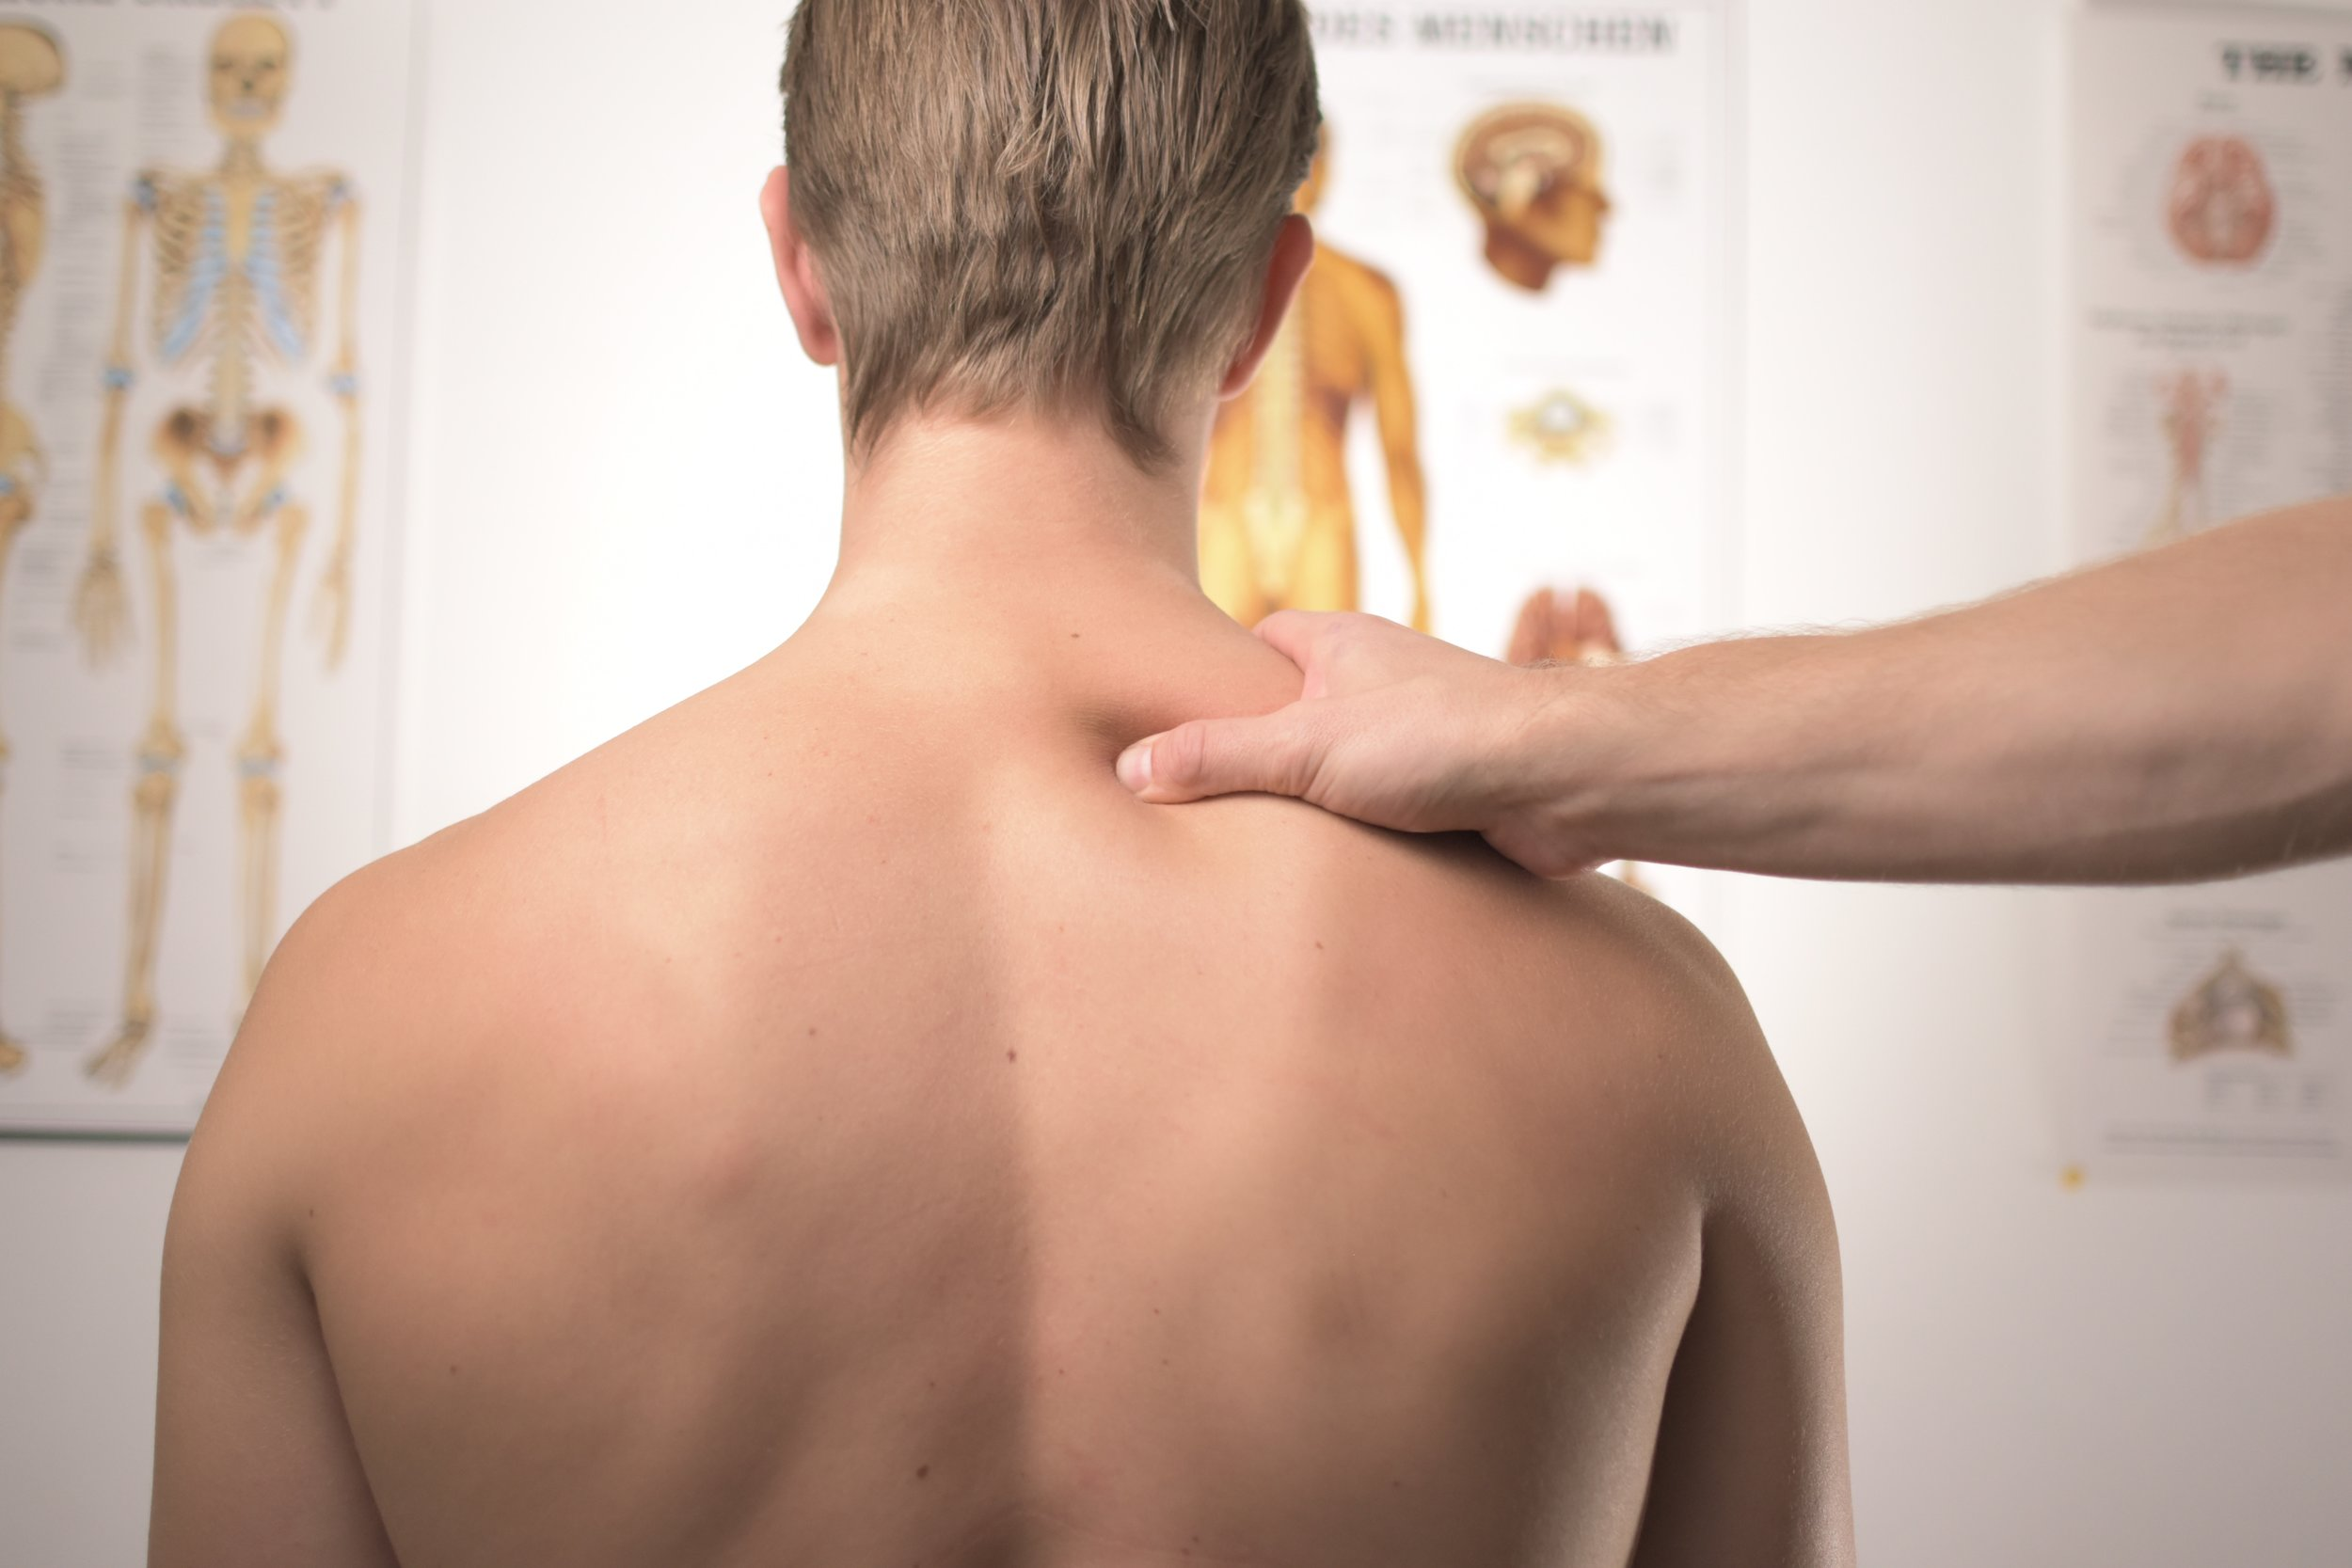 What is osteopathy? - Click below to learn more about Osteopathy.